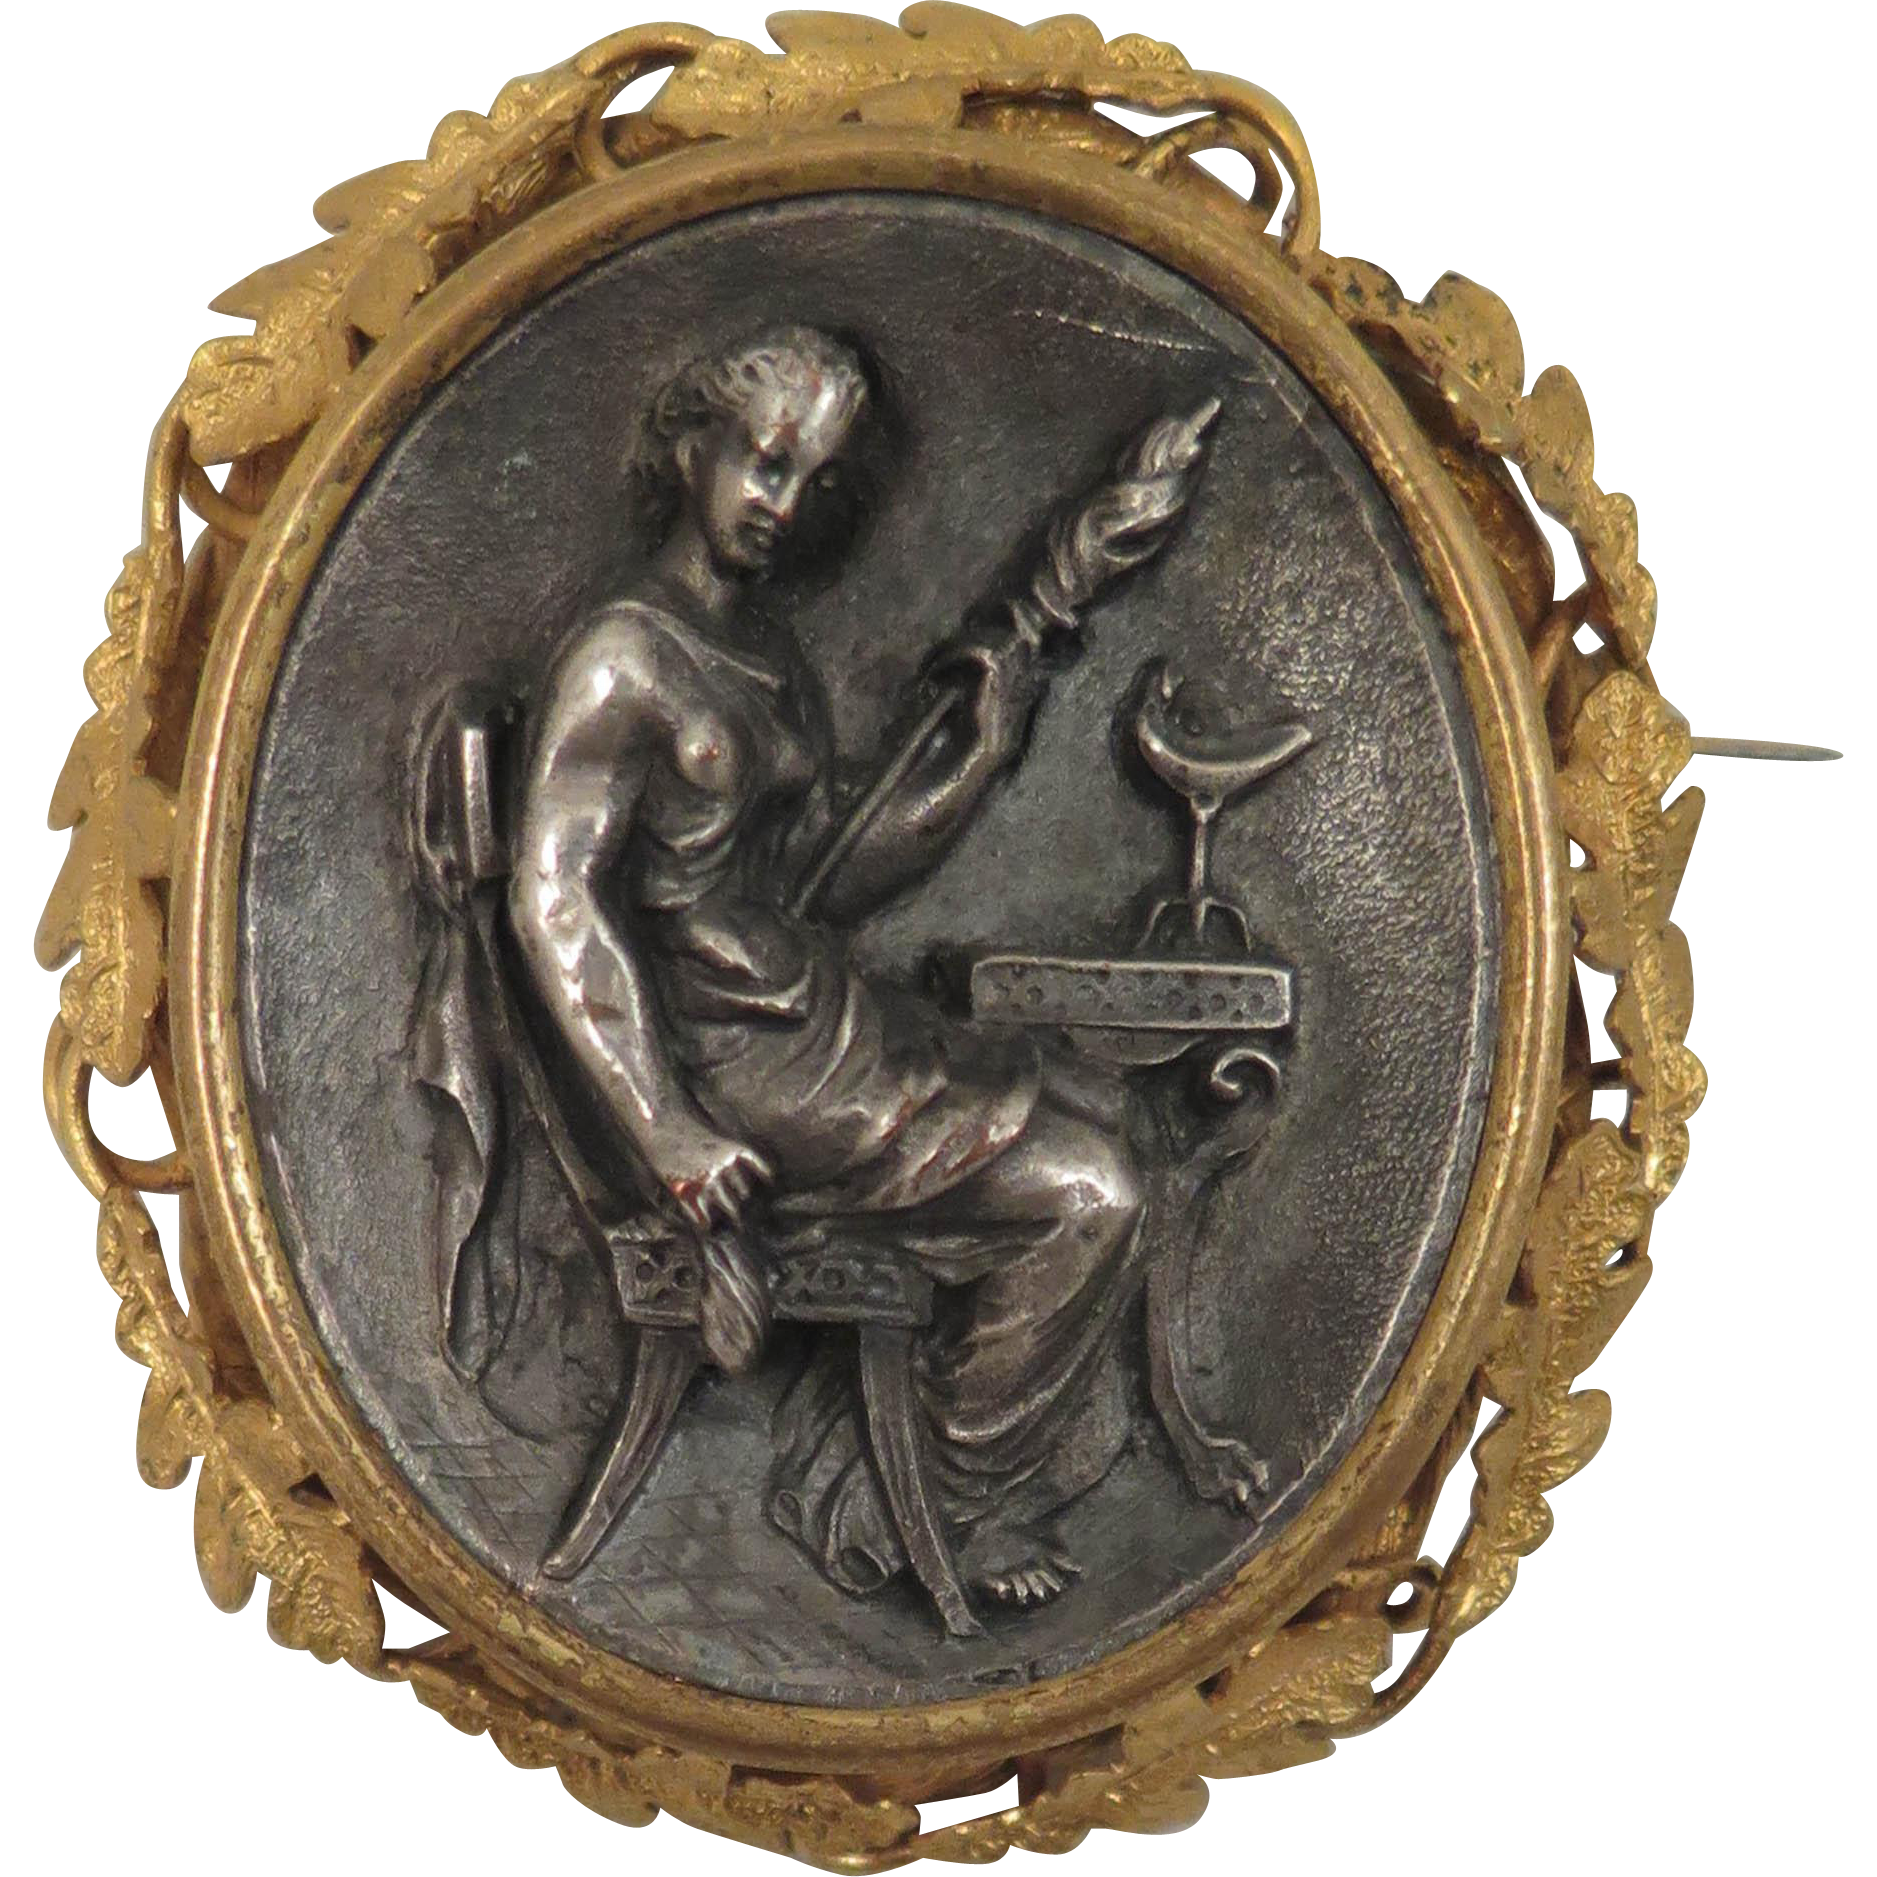 Victorian Cameo Brooch of the Fate Clotho Spinning the Thread of Life